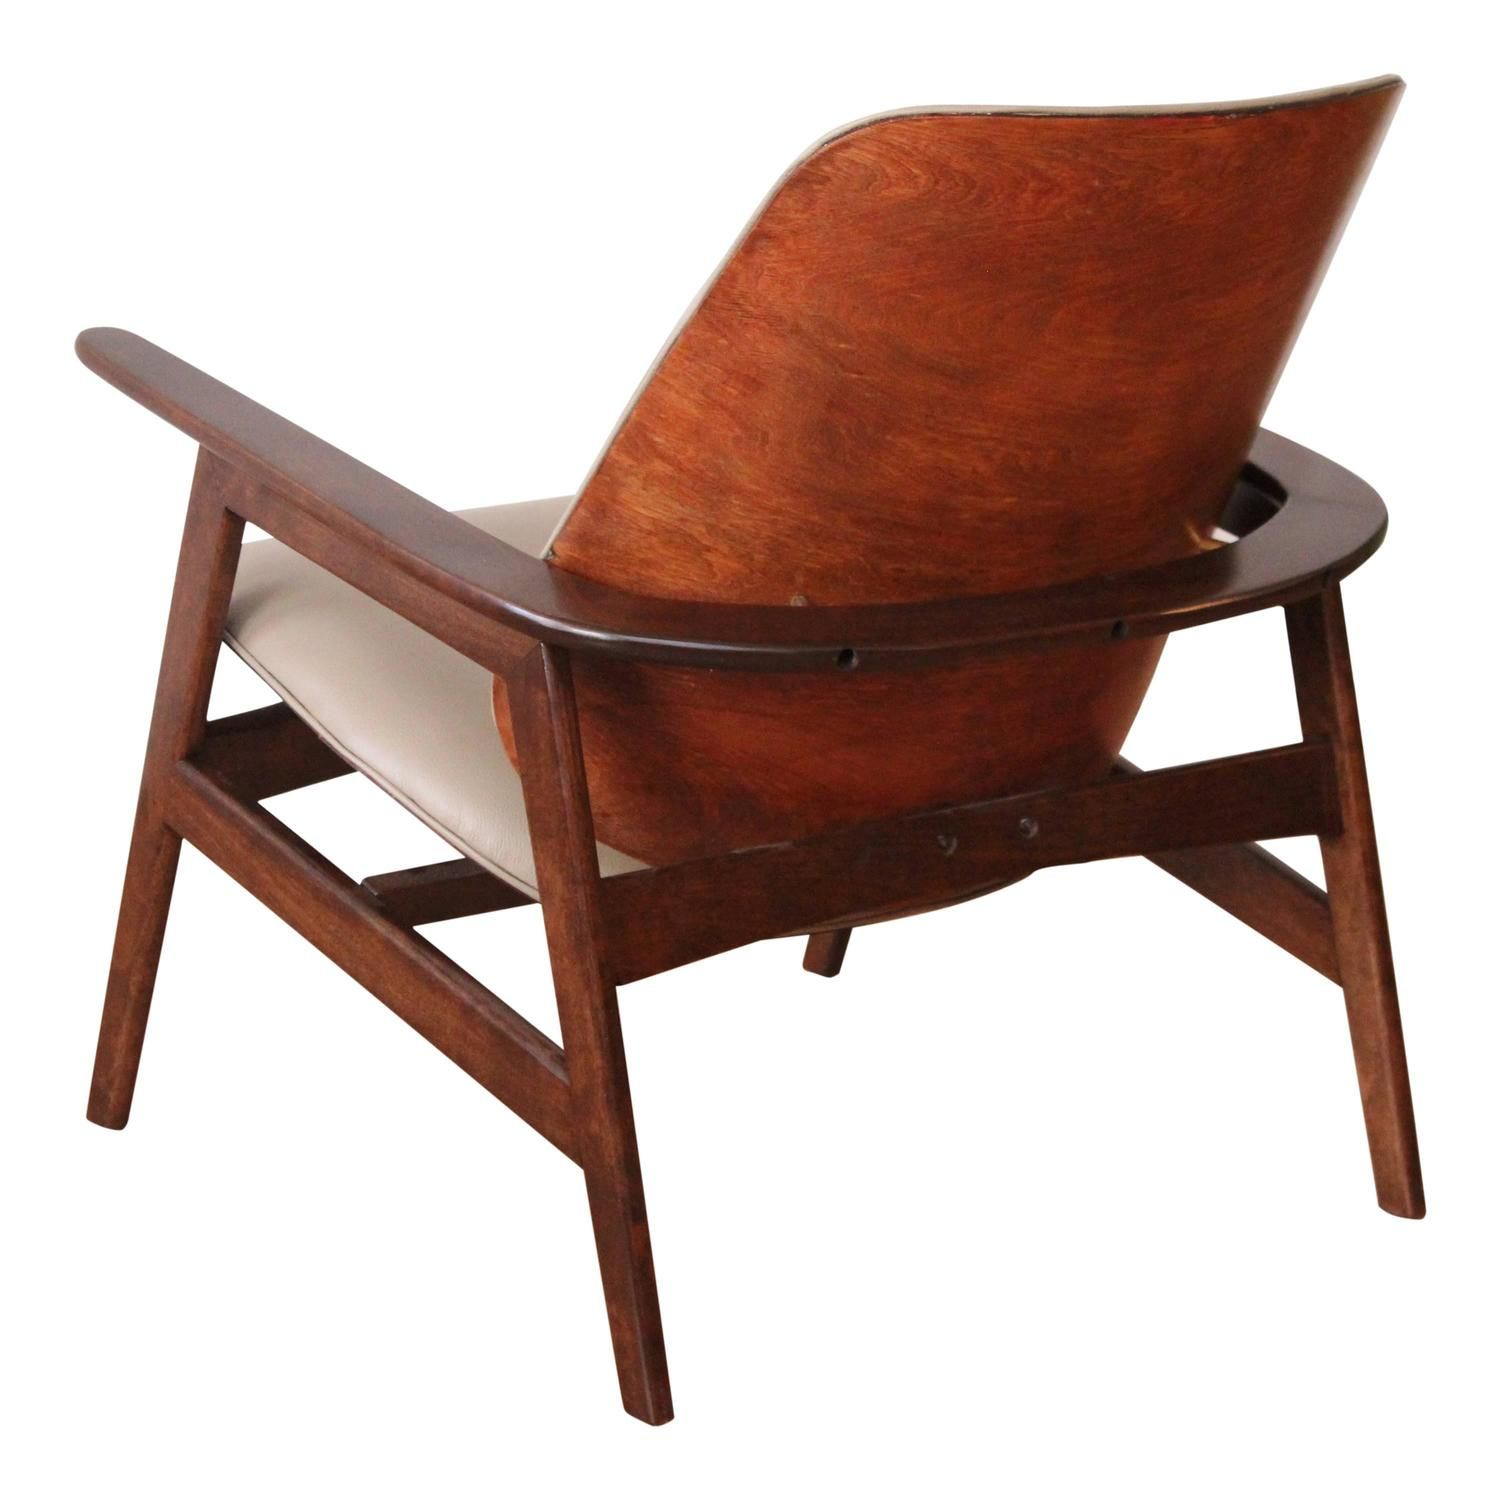 Koda Wood Lounge Chair | From A Unique Collection Of Antique And Modern  Chairs At Https://www.1stdibs.com/furniture/seating/chairs/